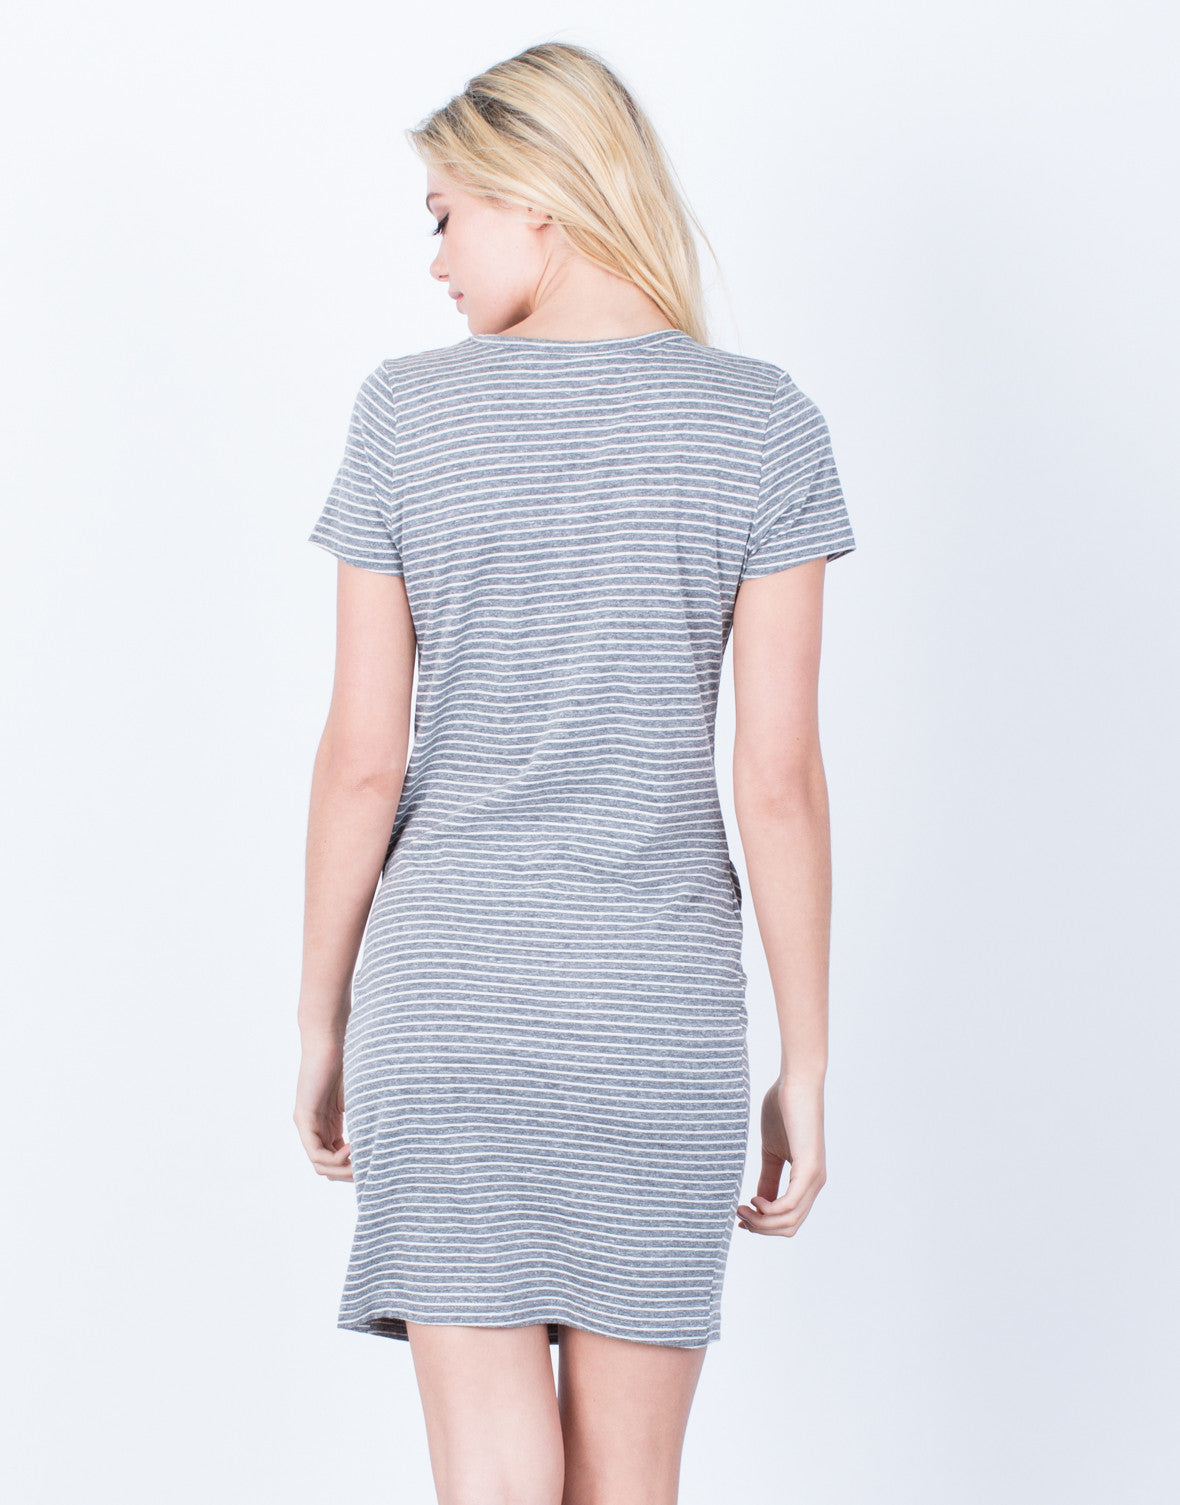 Back View of Crazy For Stripes Tee Dress